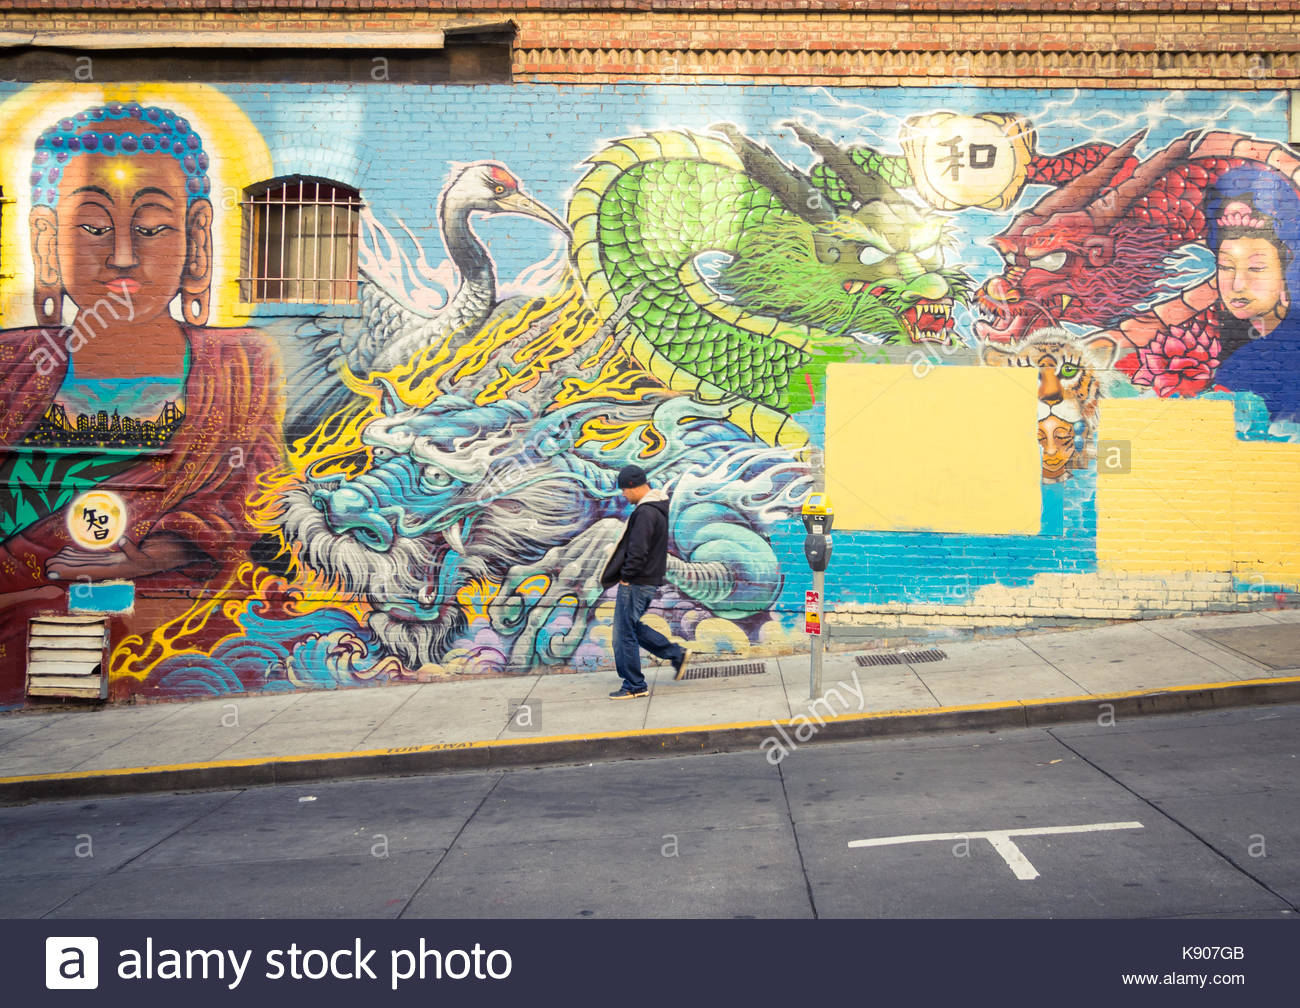 An untitled mural by artist Francisco Aquino on Commercial Street in Chinatown in San Francisco, California, USA. - Stock Image